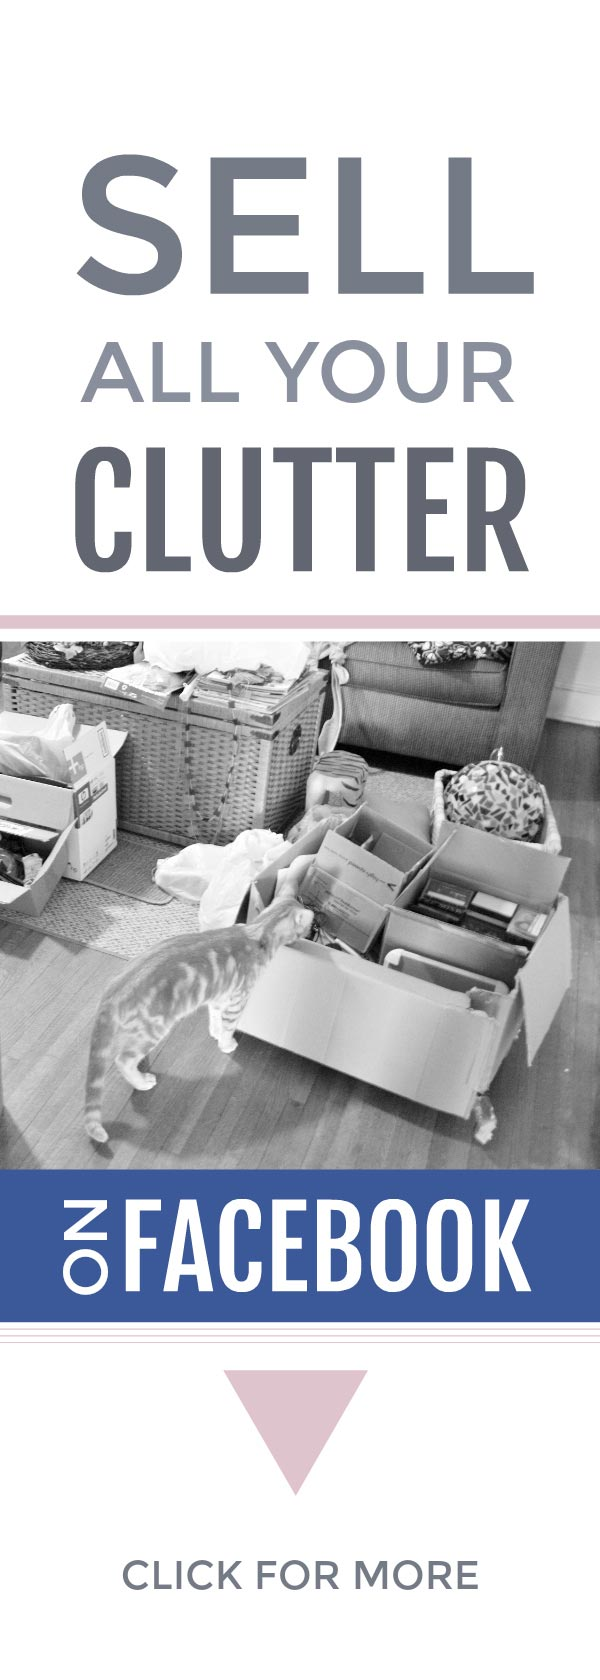 Sell your clutter easily on Facebook #declutter #clutter #simplify #frugal #organize #makemoney